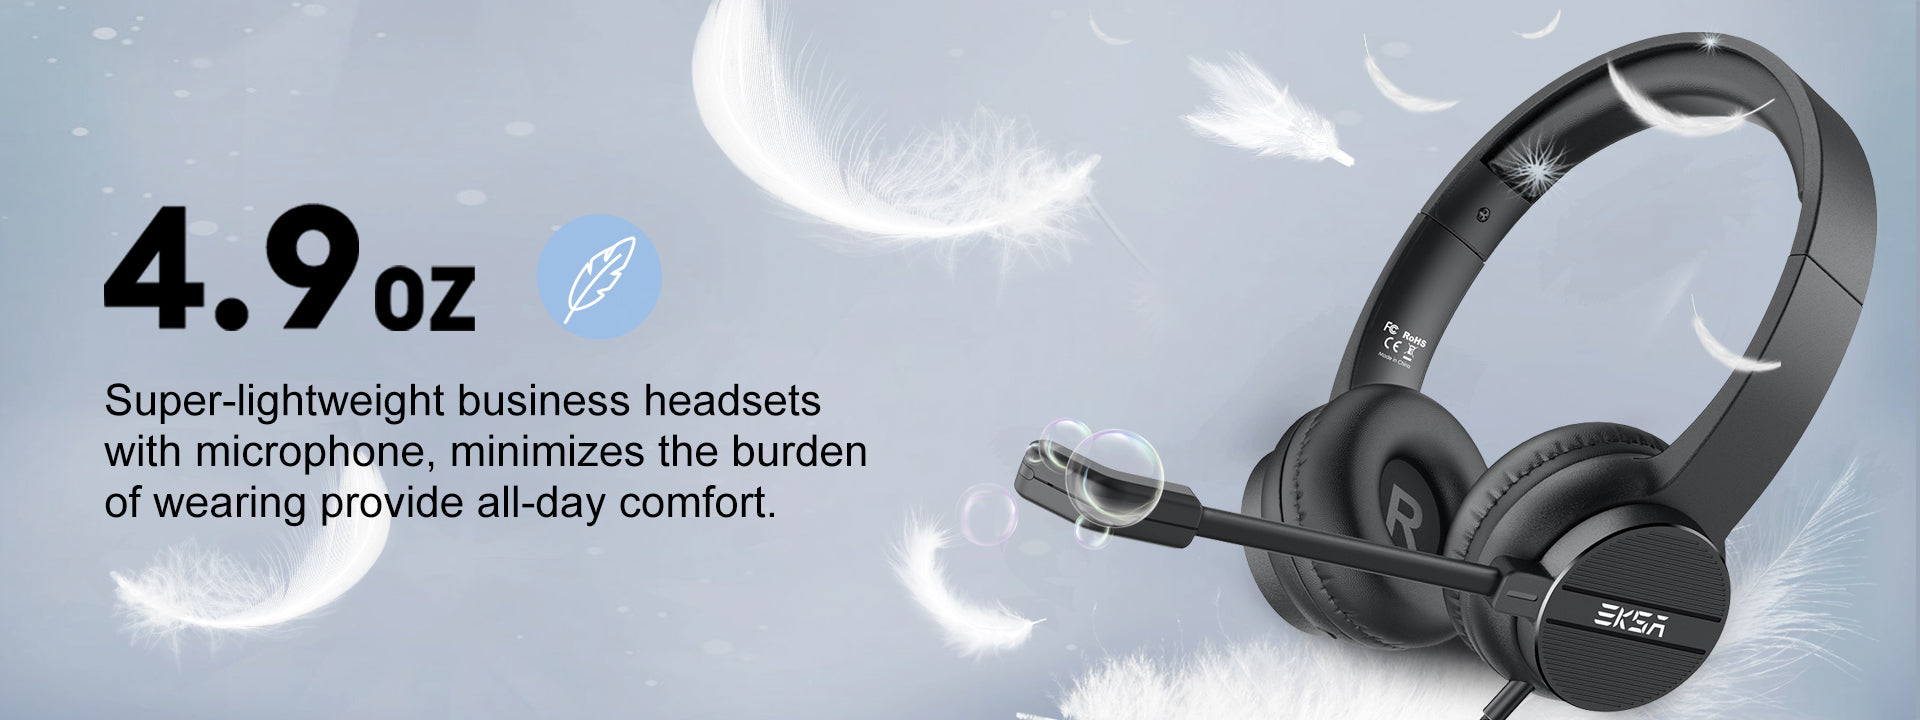 H12 Business Headset For Call